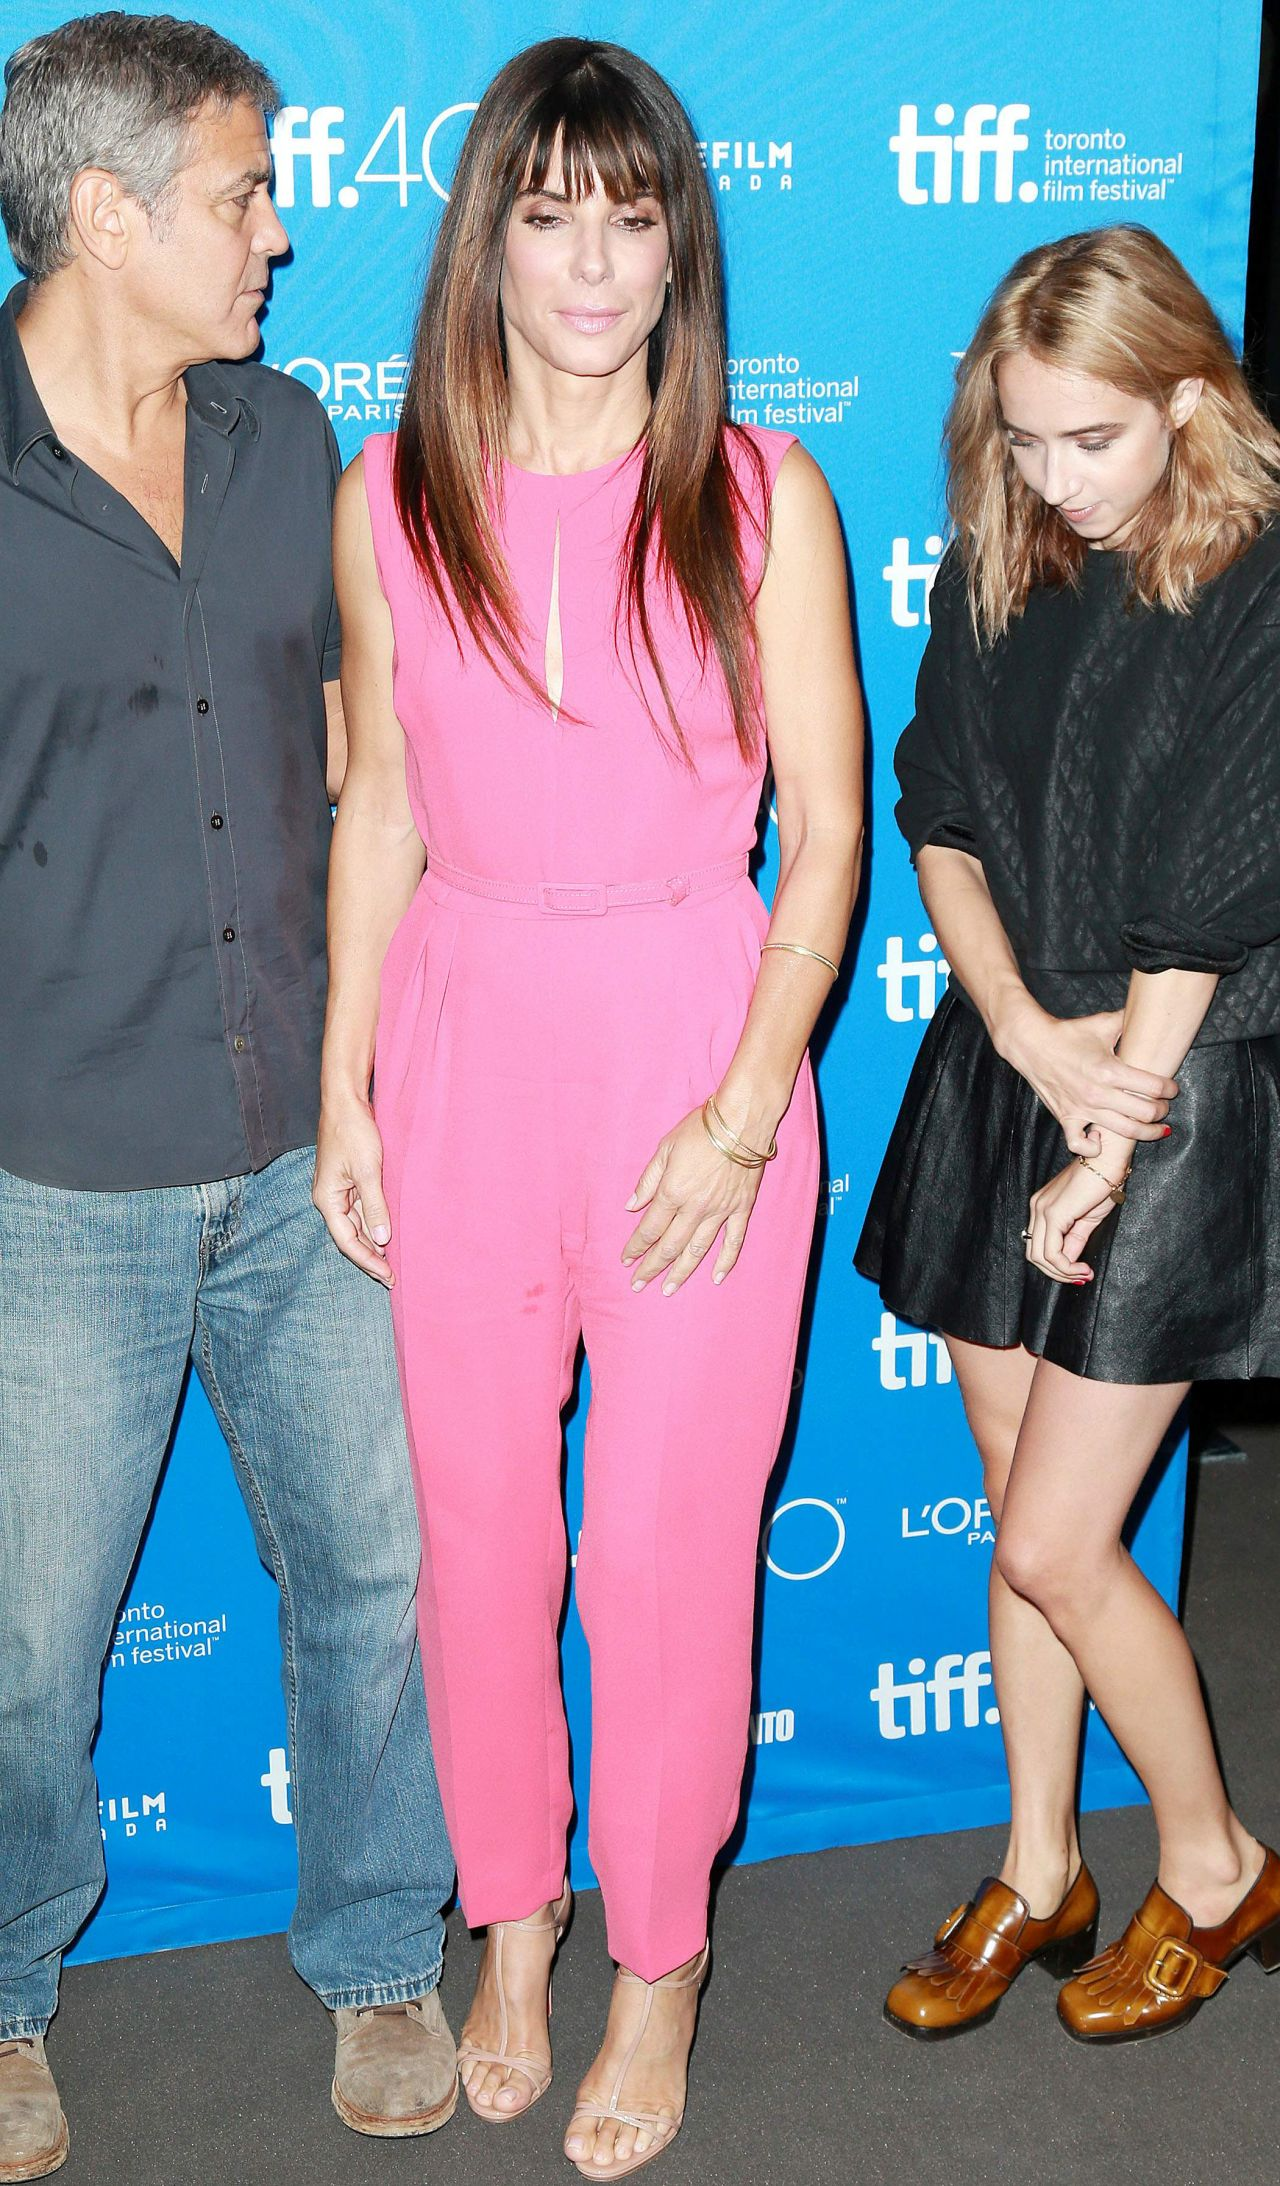 sandra-bullock-our-brand-is-crisis-press-conference-in-toronto-tiff-2015_5